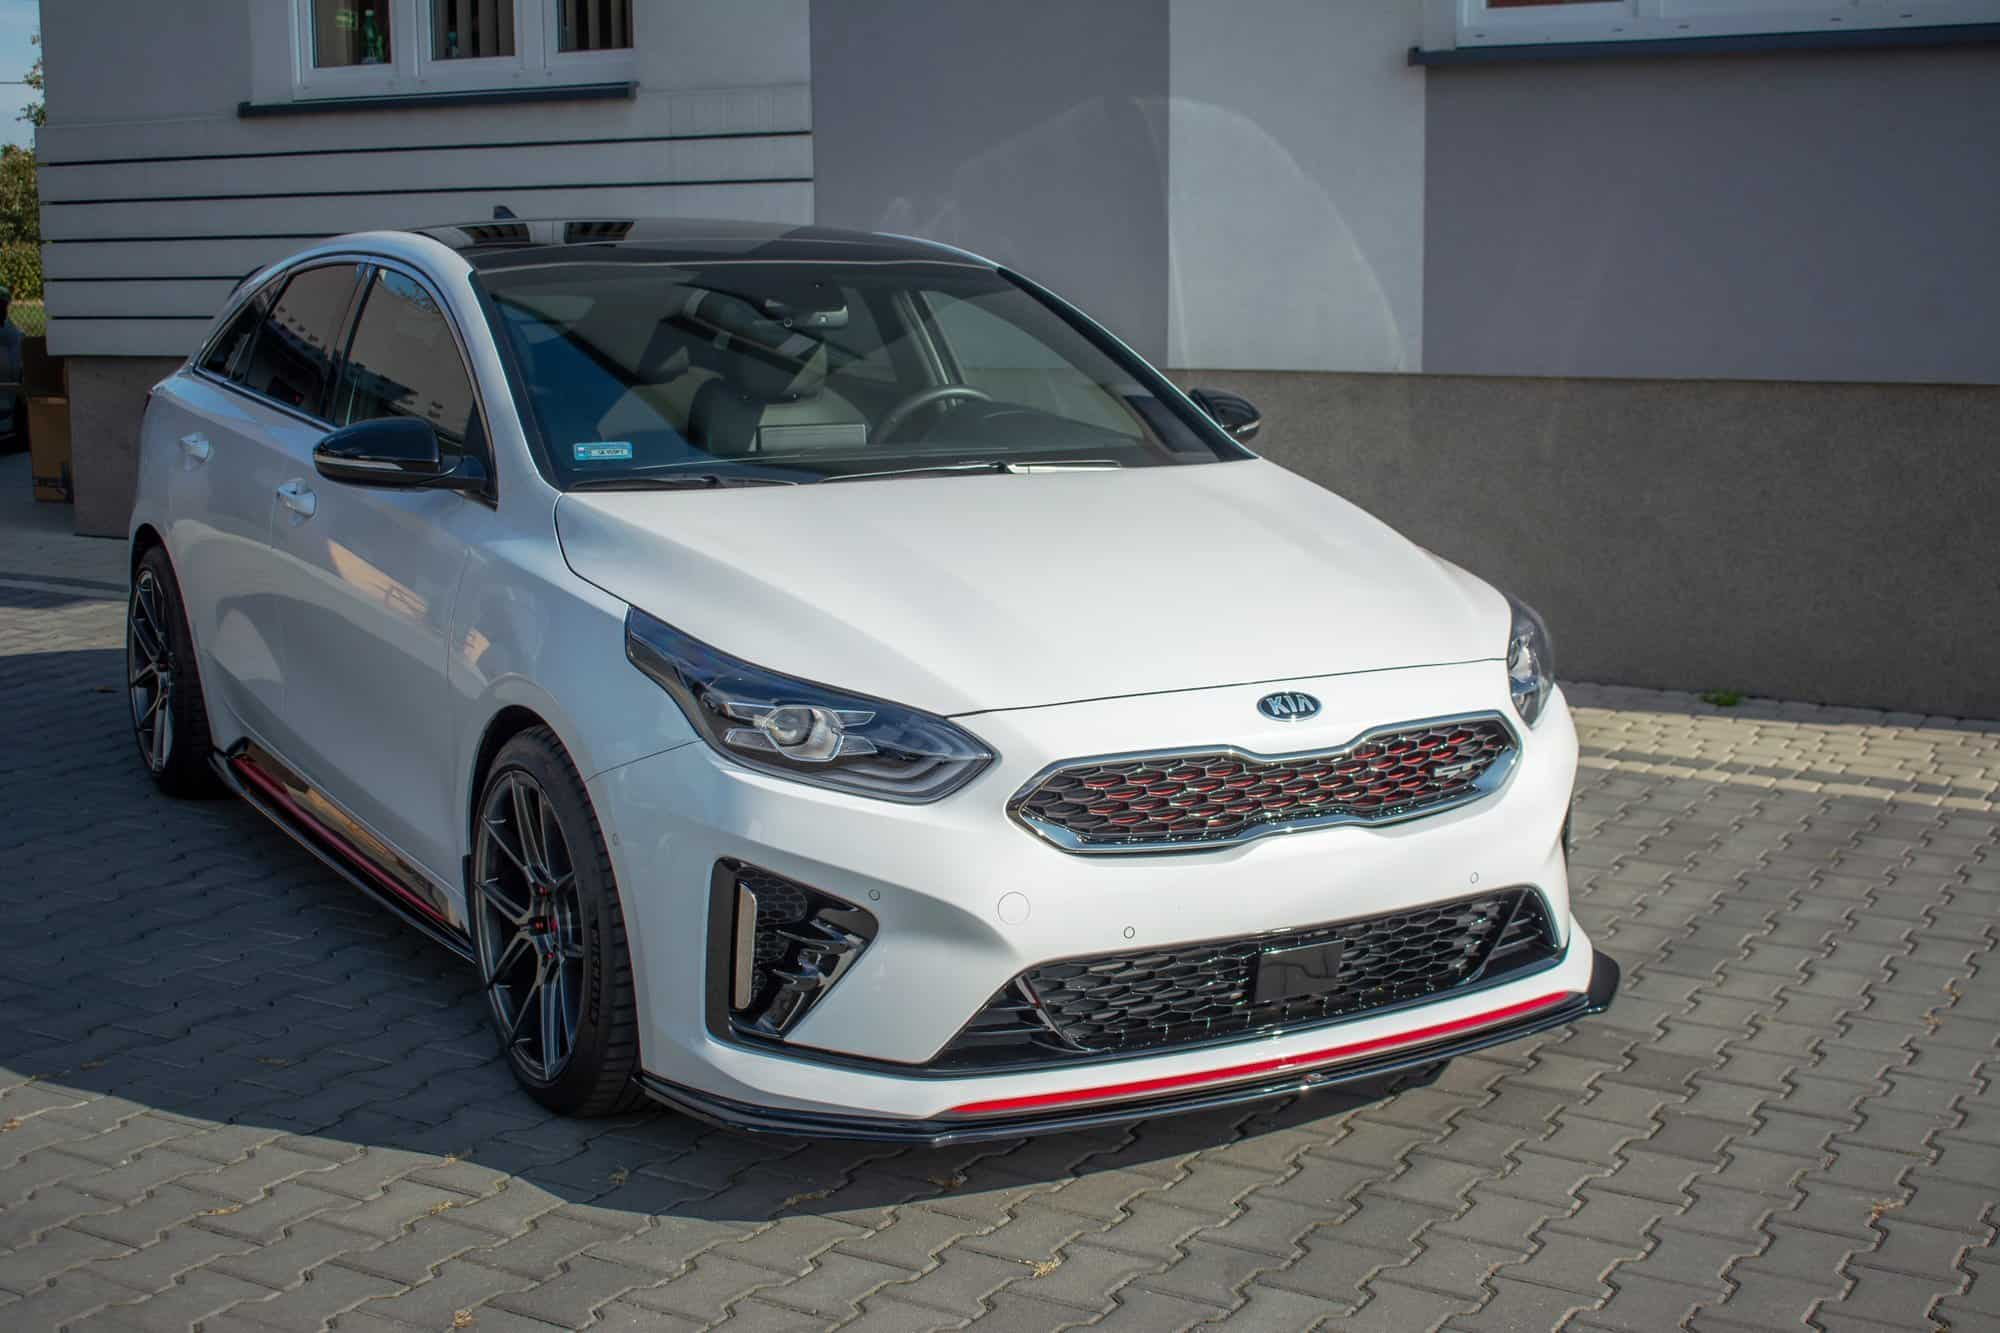 2020 Kia Proceed GT - MAXTON DESIGN